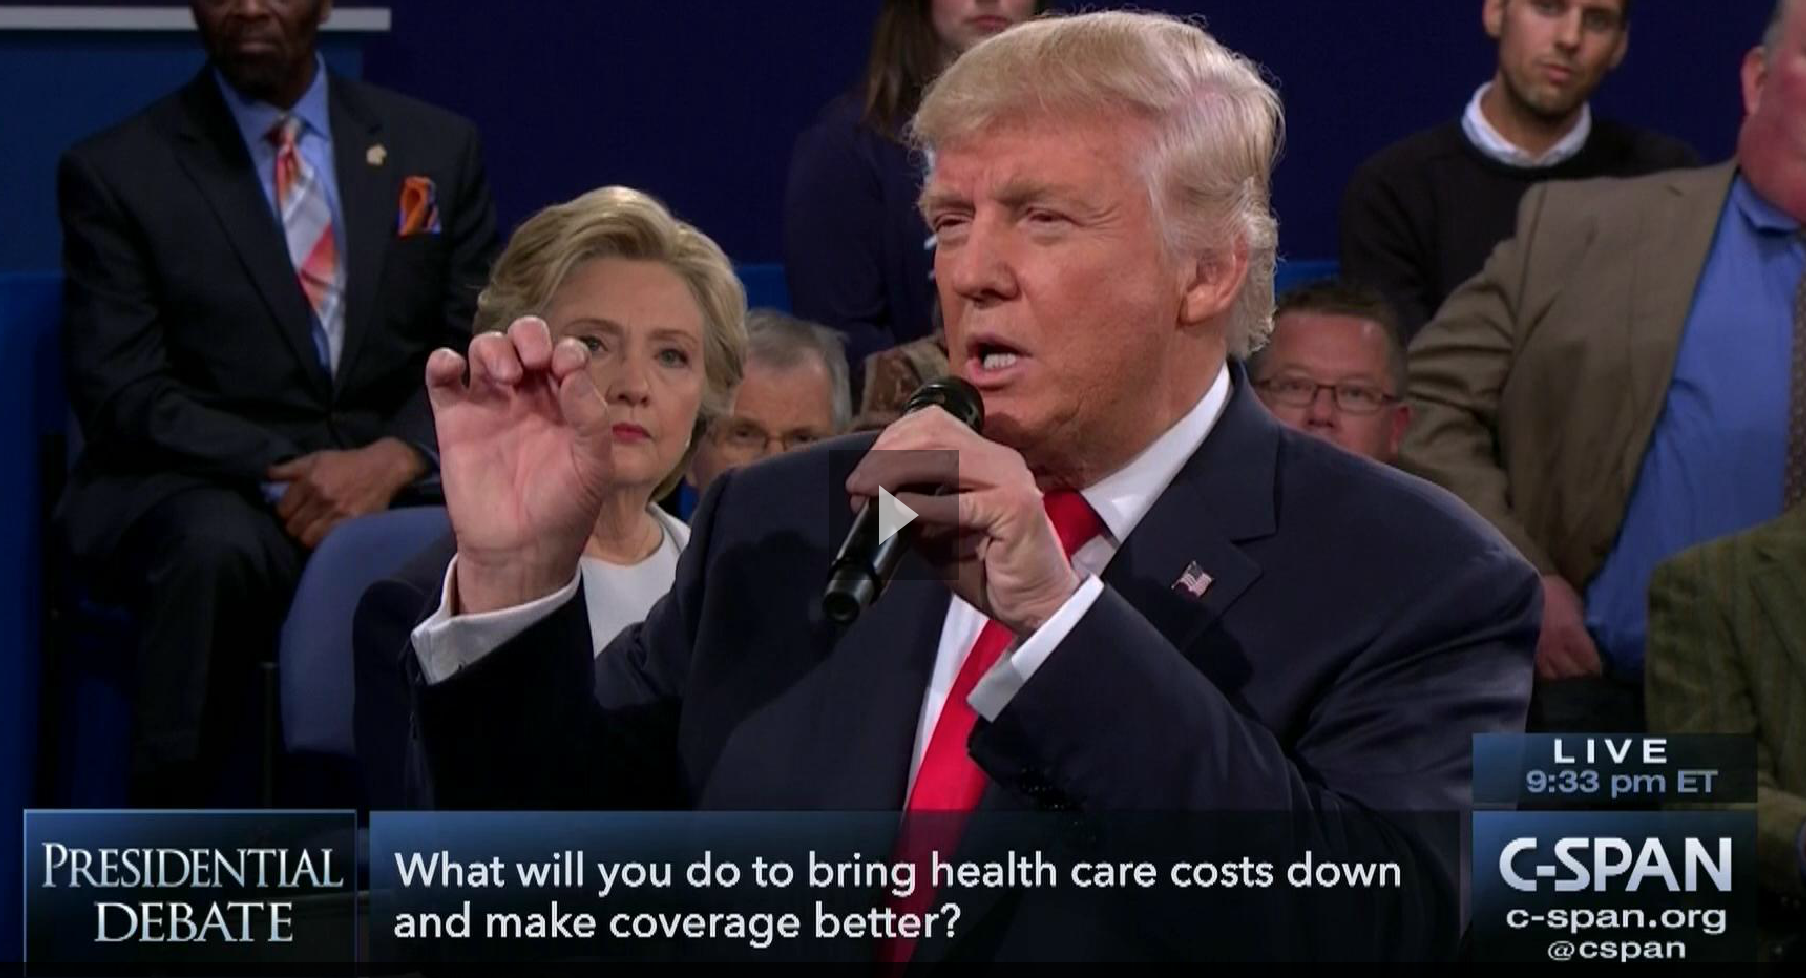 Trump's debate claim on health care costs: It depends what you mean by 'cost'